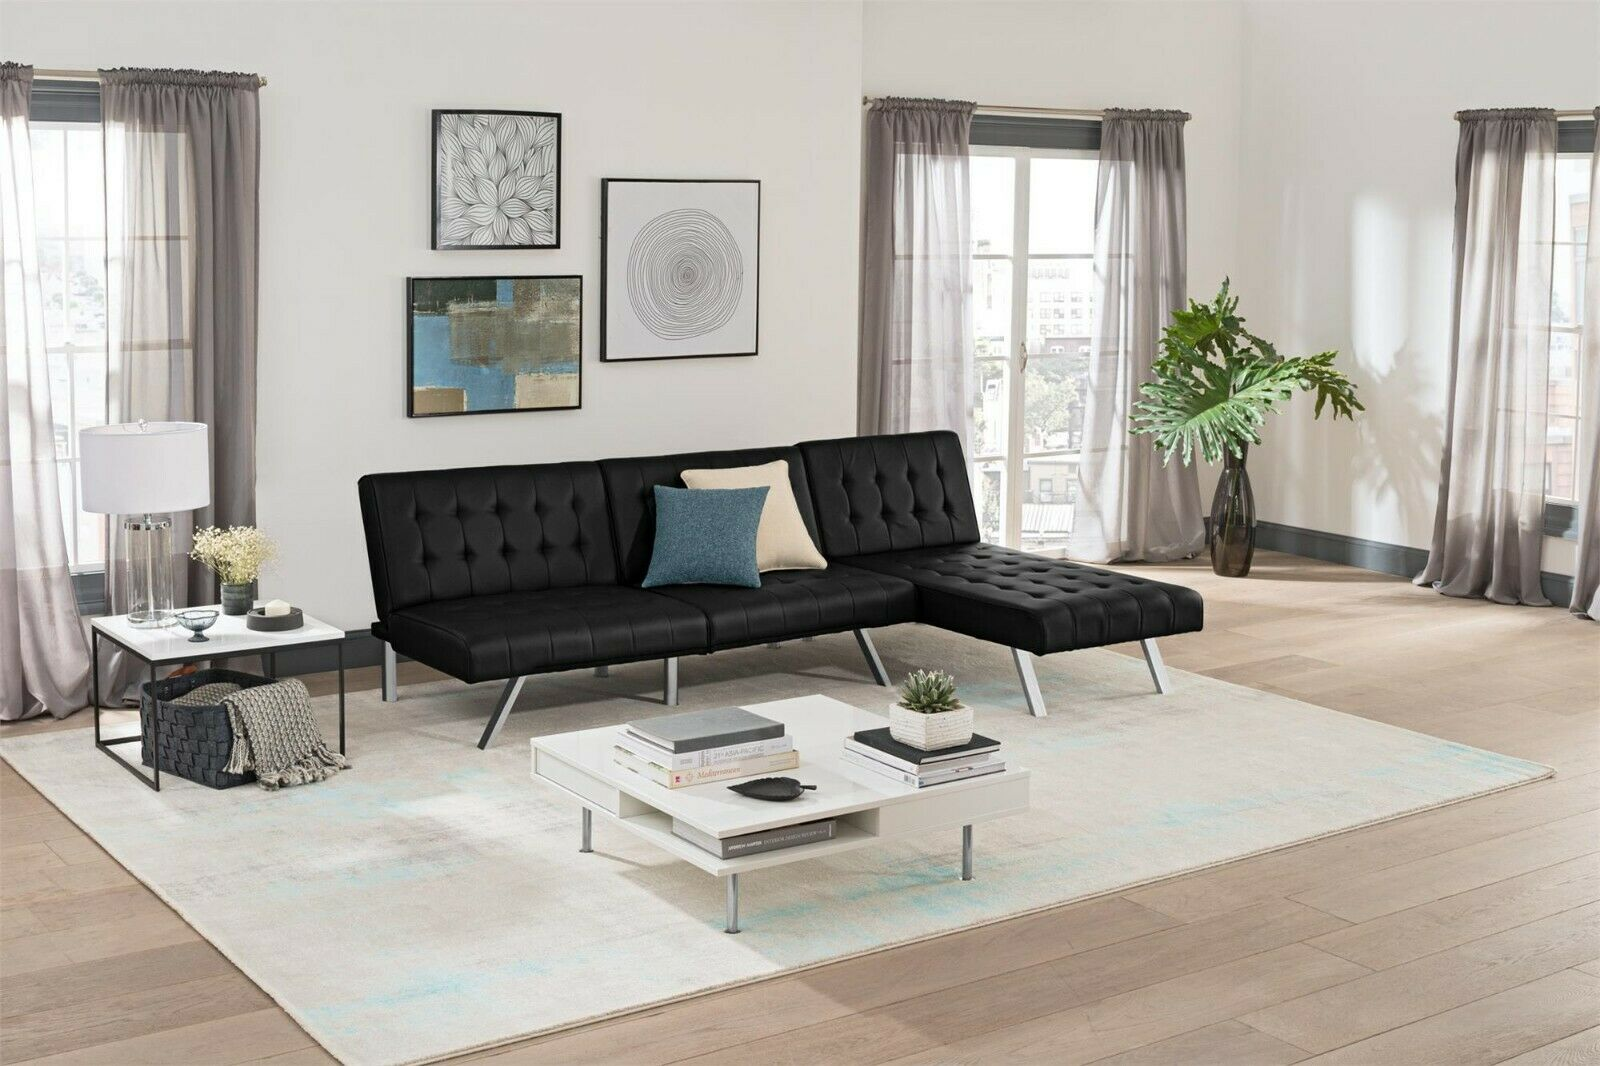 Sofa Sleeper Sectional Chaise Lounge Faux Leather Bed Convertible Futon Couch